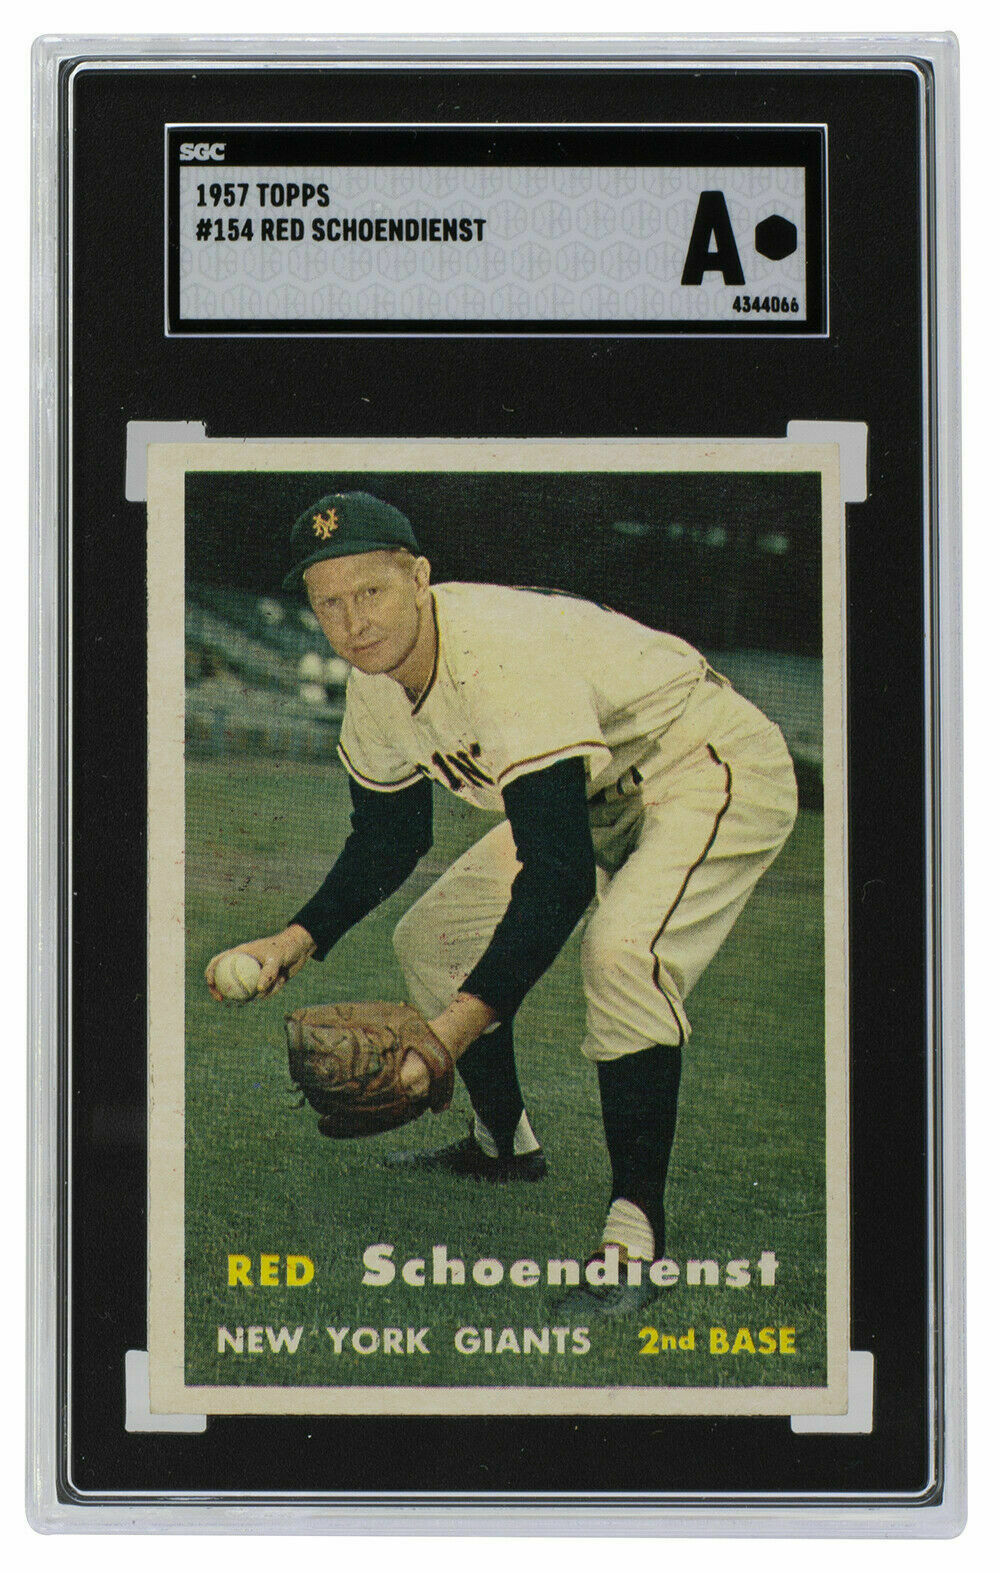 Red Schoendienst New York Giants 1957 Topps #153 Baseball Card SGC A - $164.33